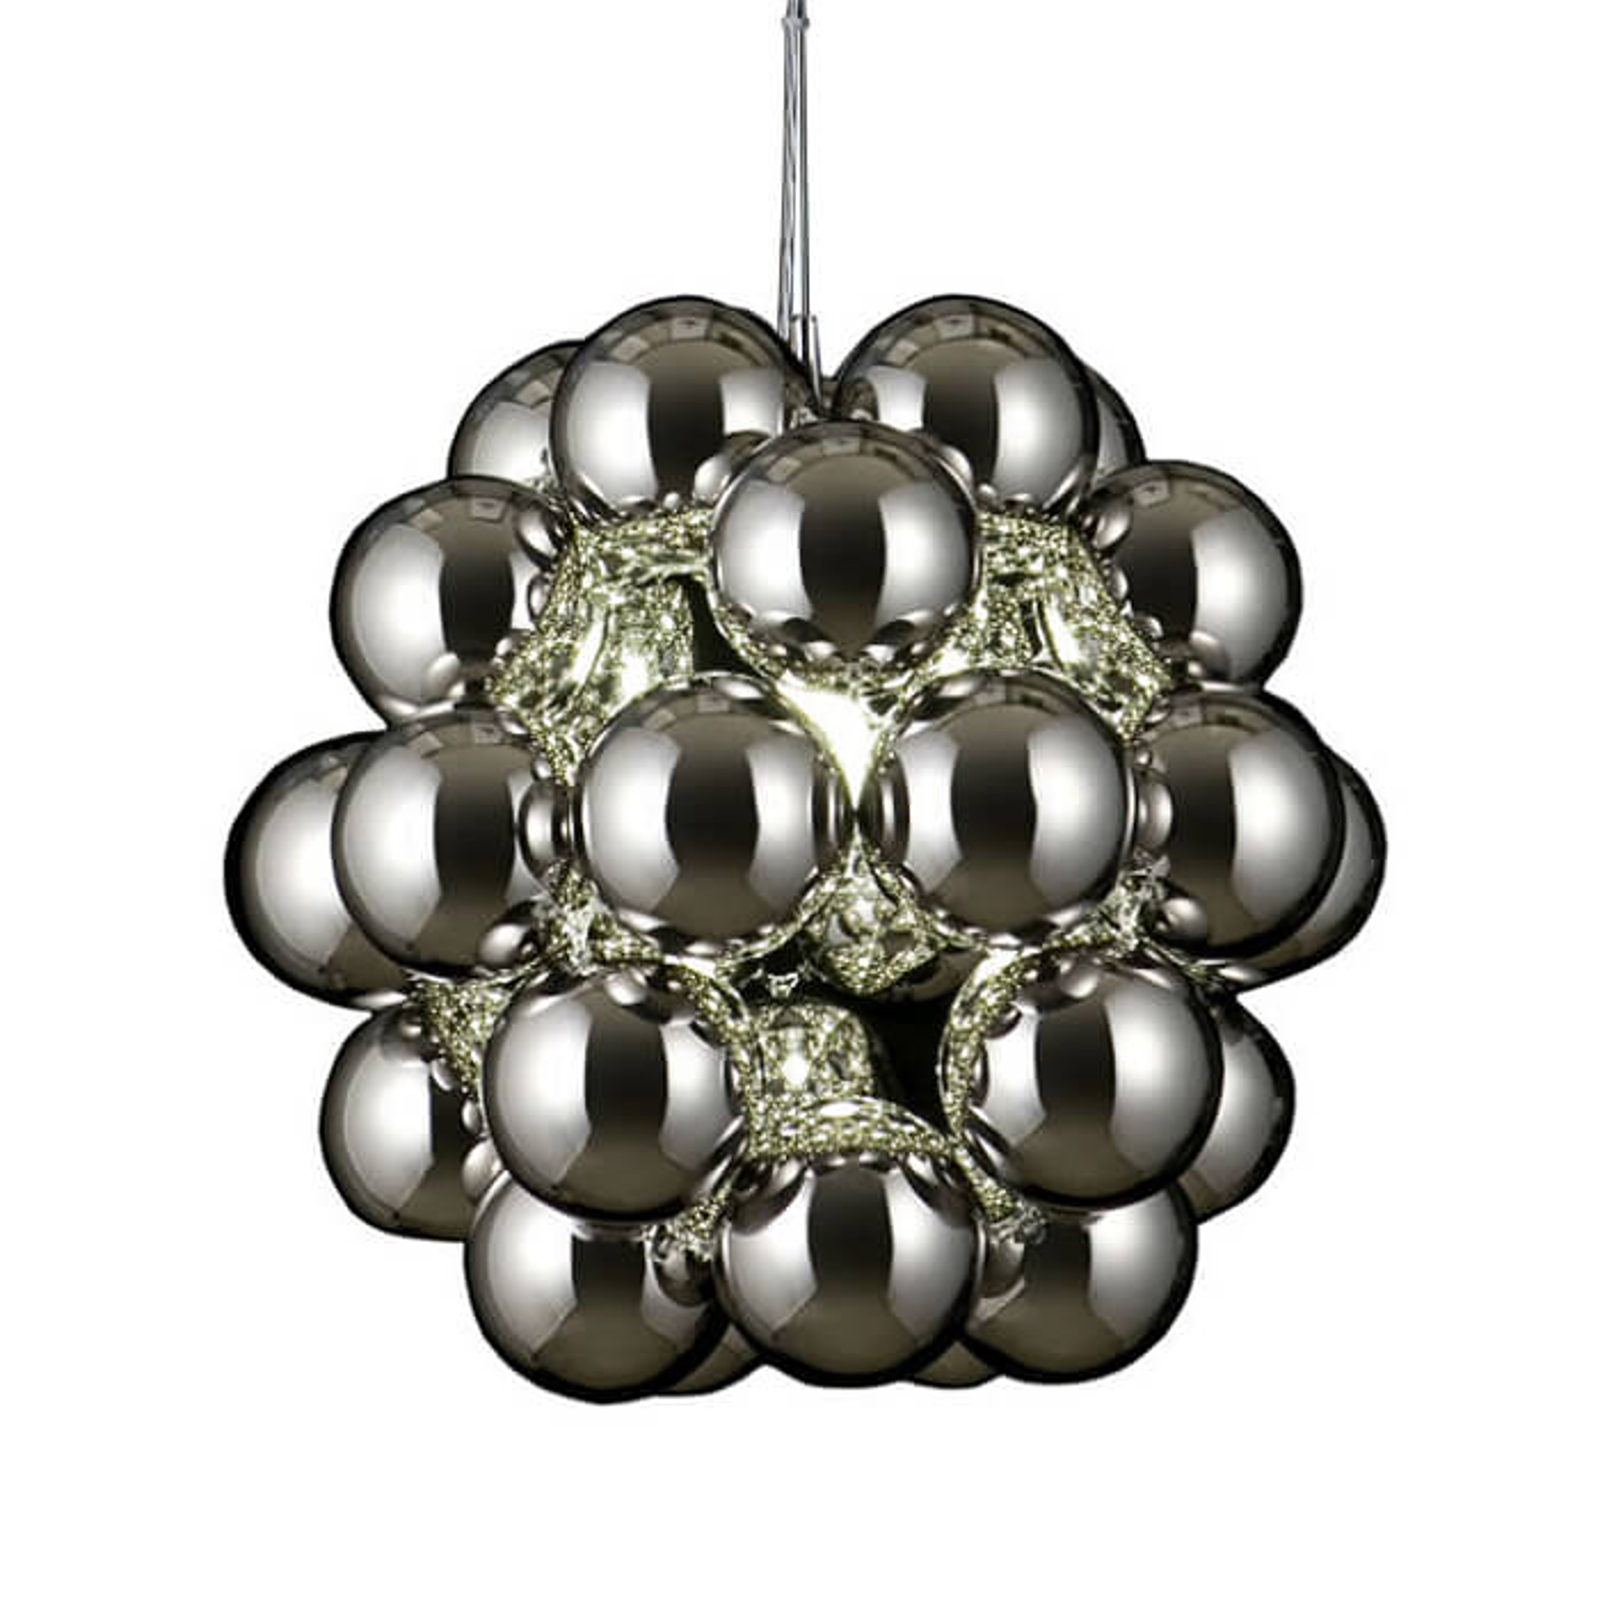 Innermost Beads Penta - hanglamp in chroom